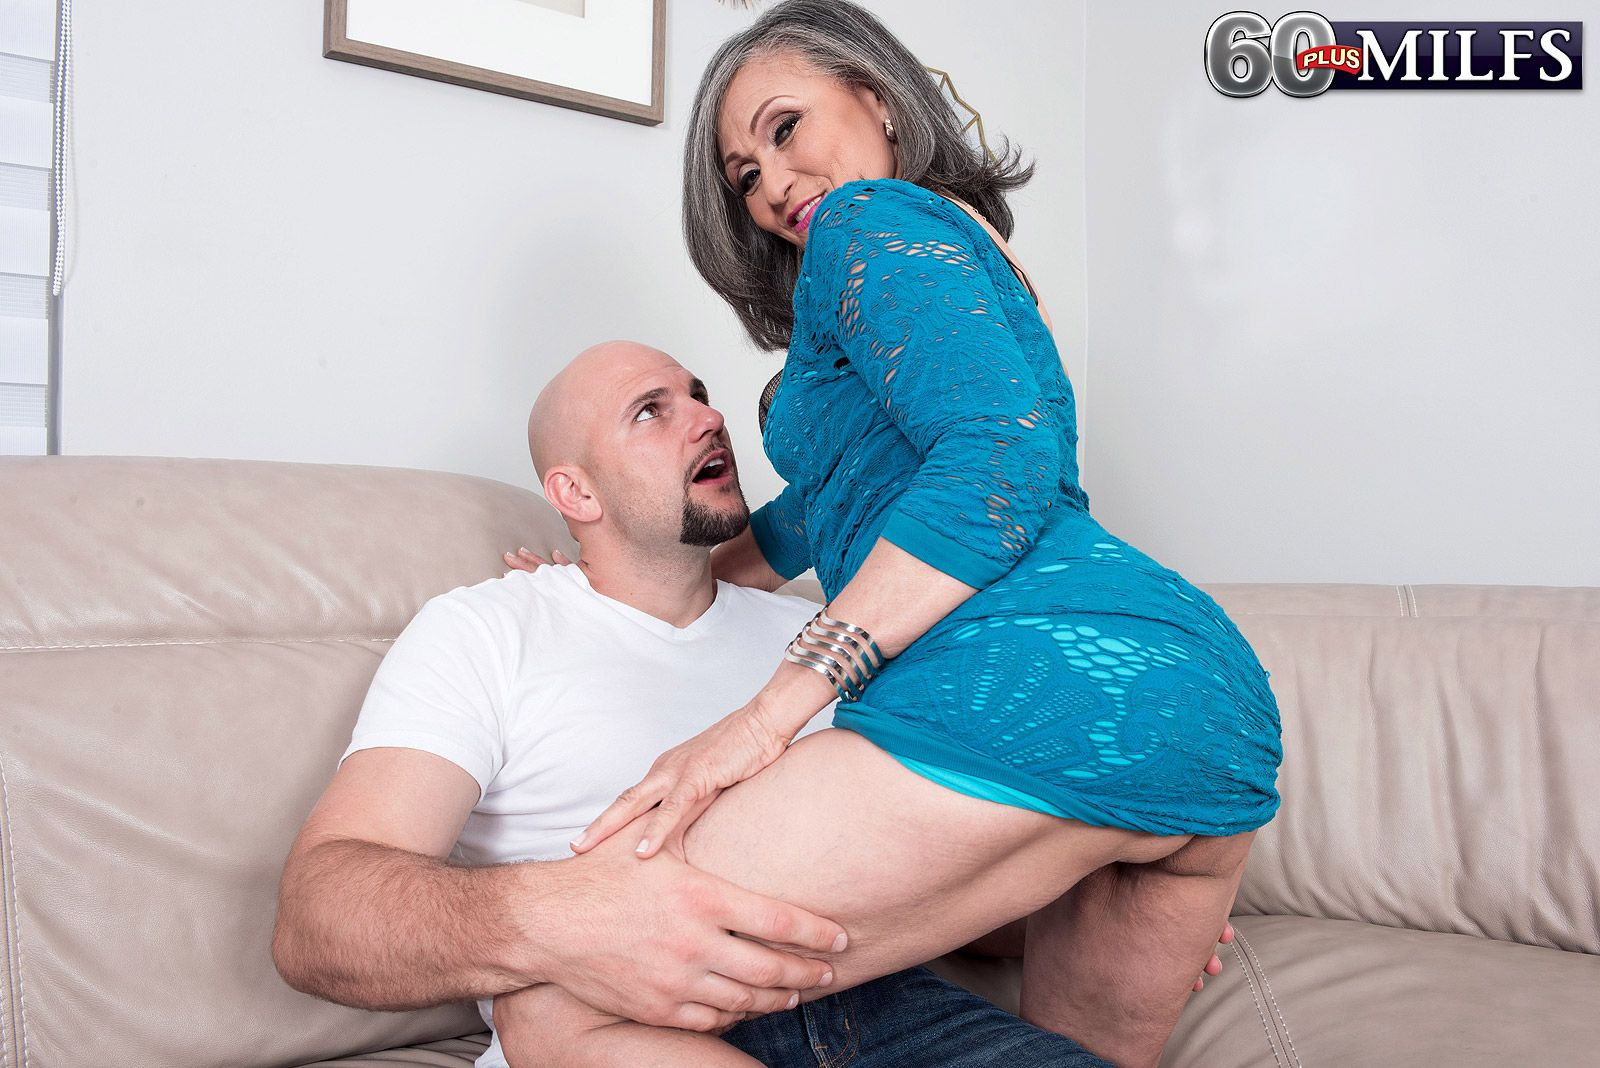 Mature lady Kokie Del Coco seduces a much younger man in a blue dress